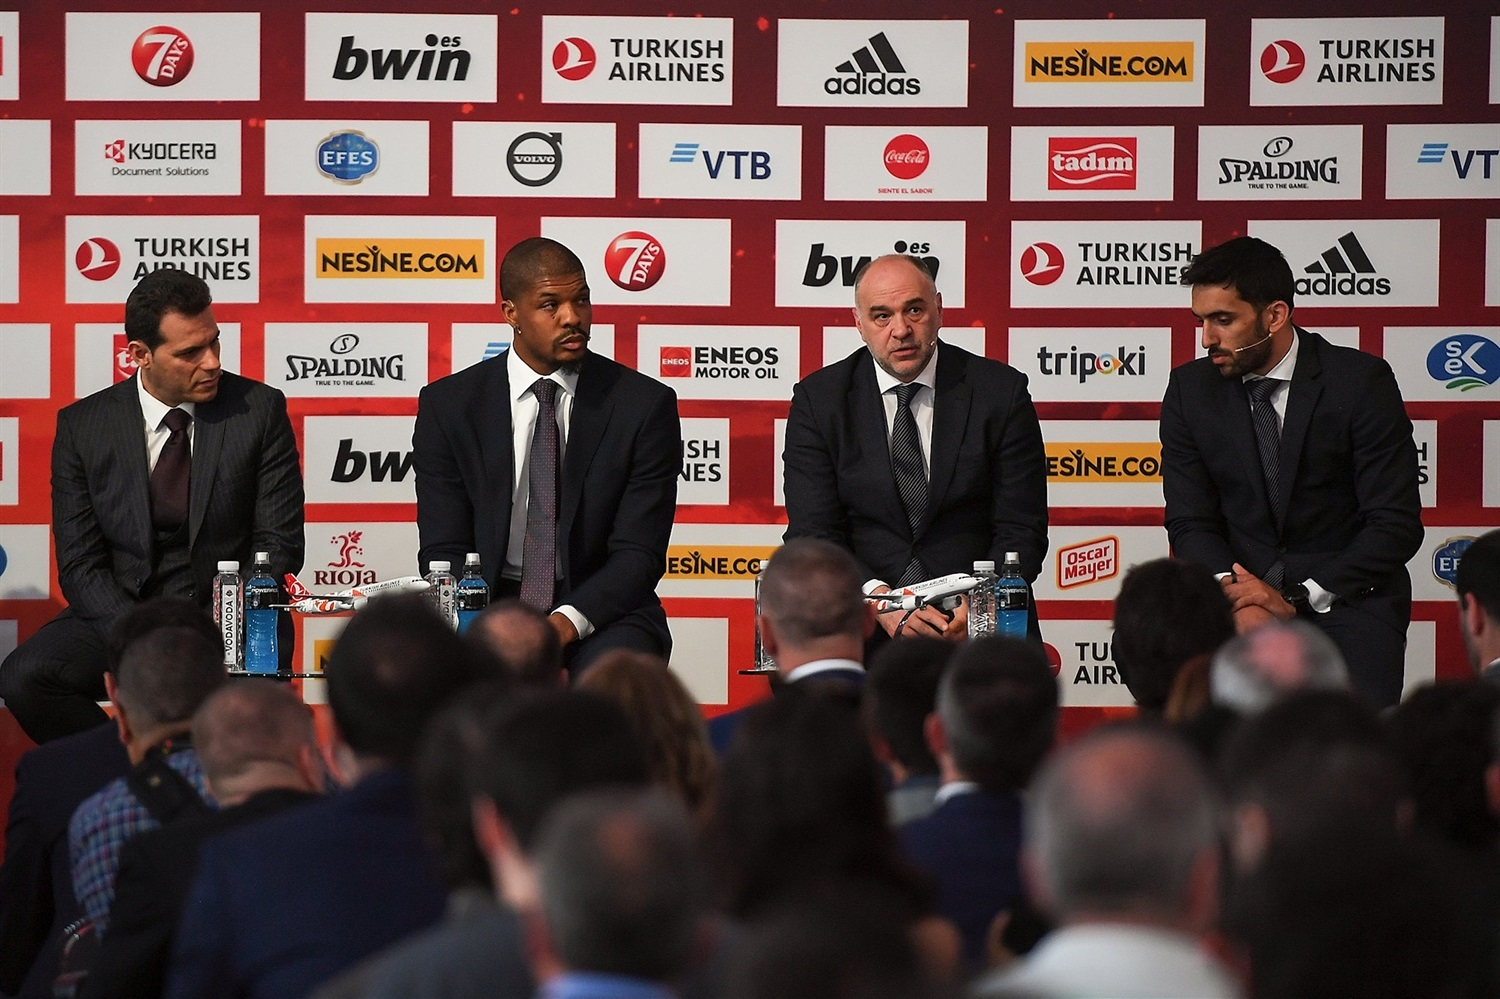 CSKA Moscow vs. Real Madrid - Opening Press Conference - Final Four Vitoria-Gasteiz 2019 - EB18